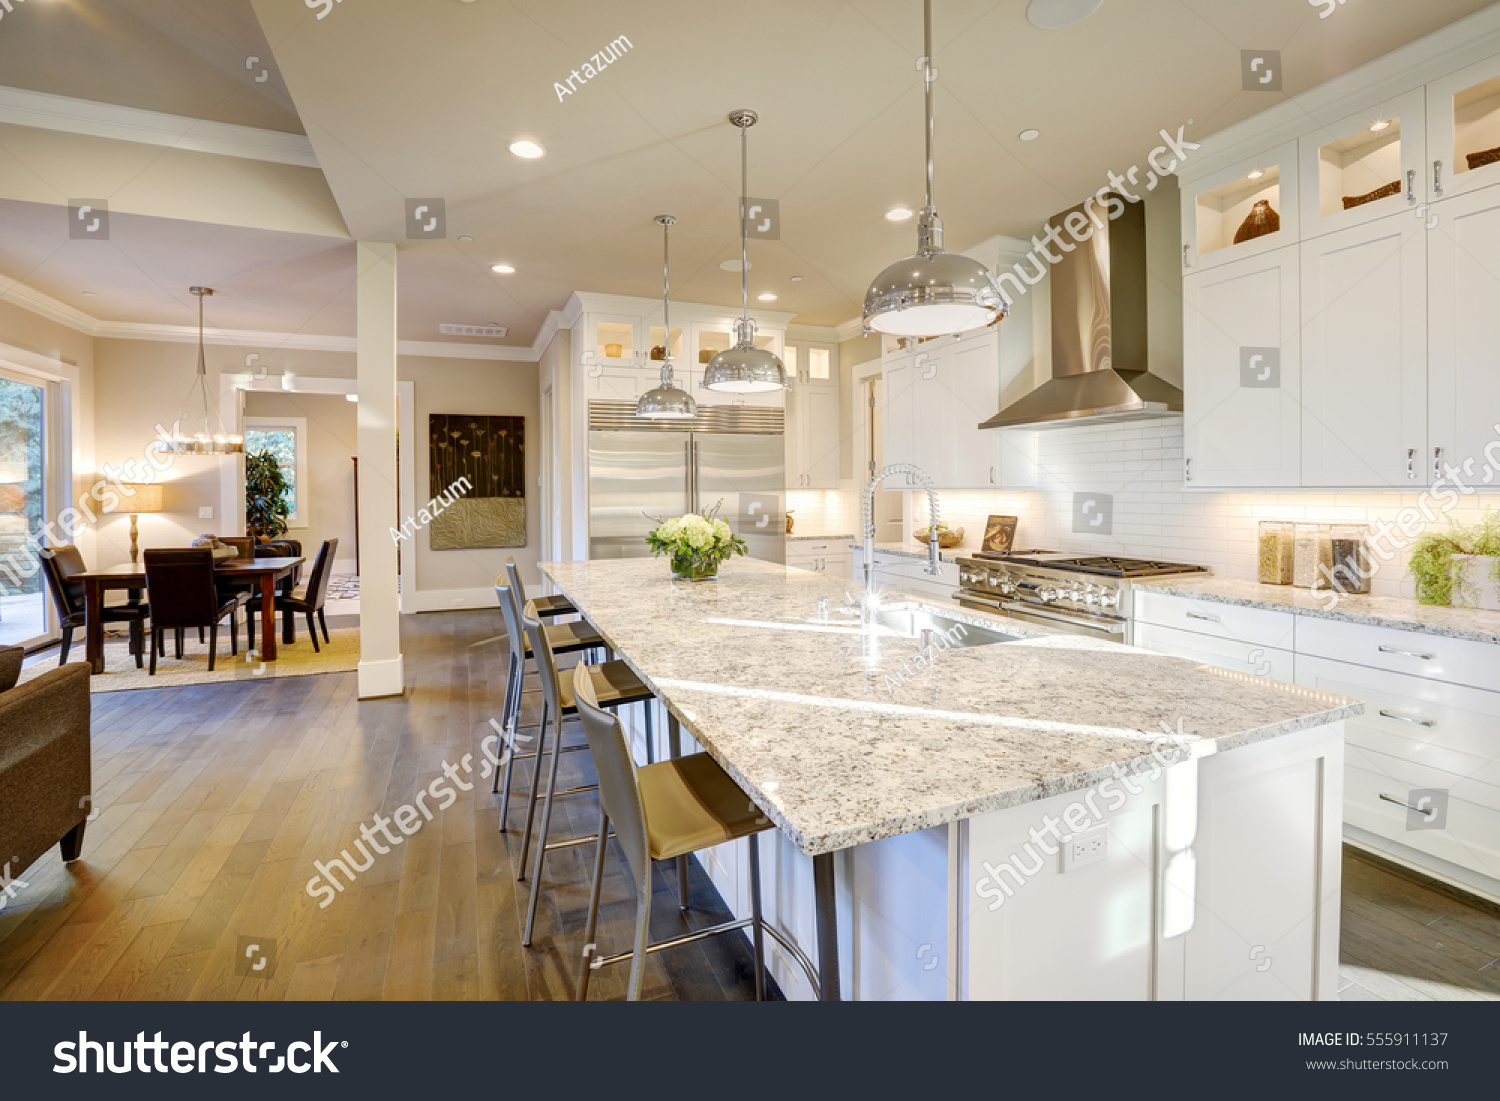 White kitchen design features large bar stock photo for Cocinas grandes modernas